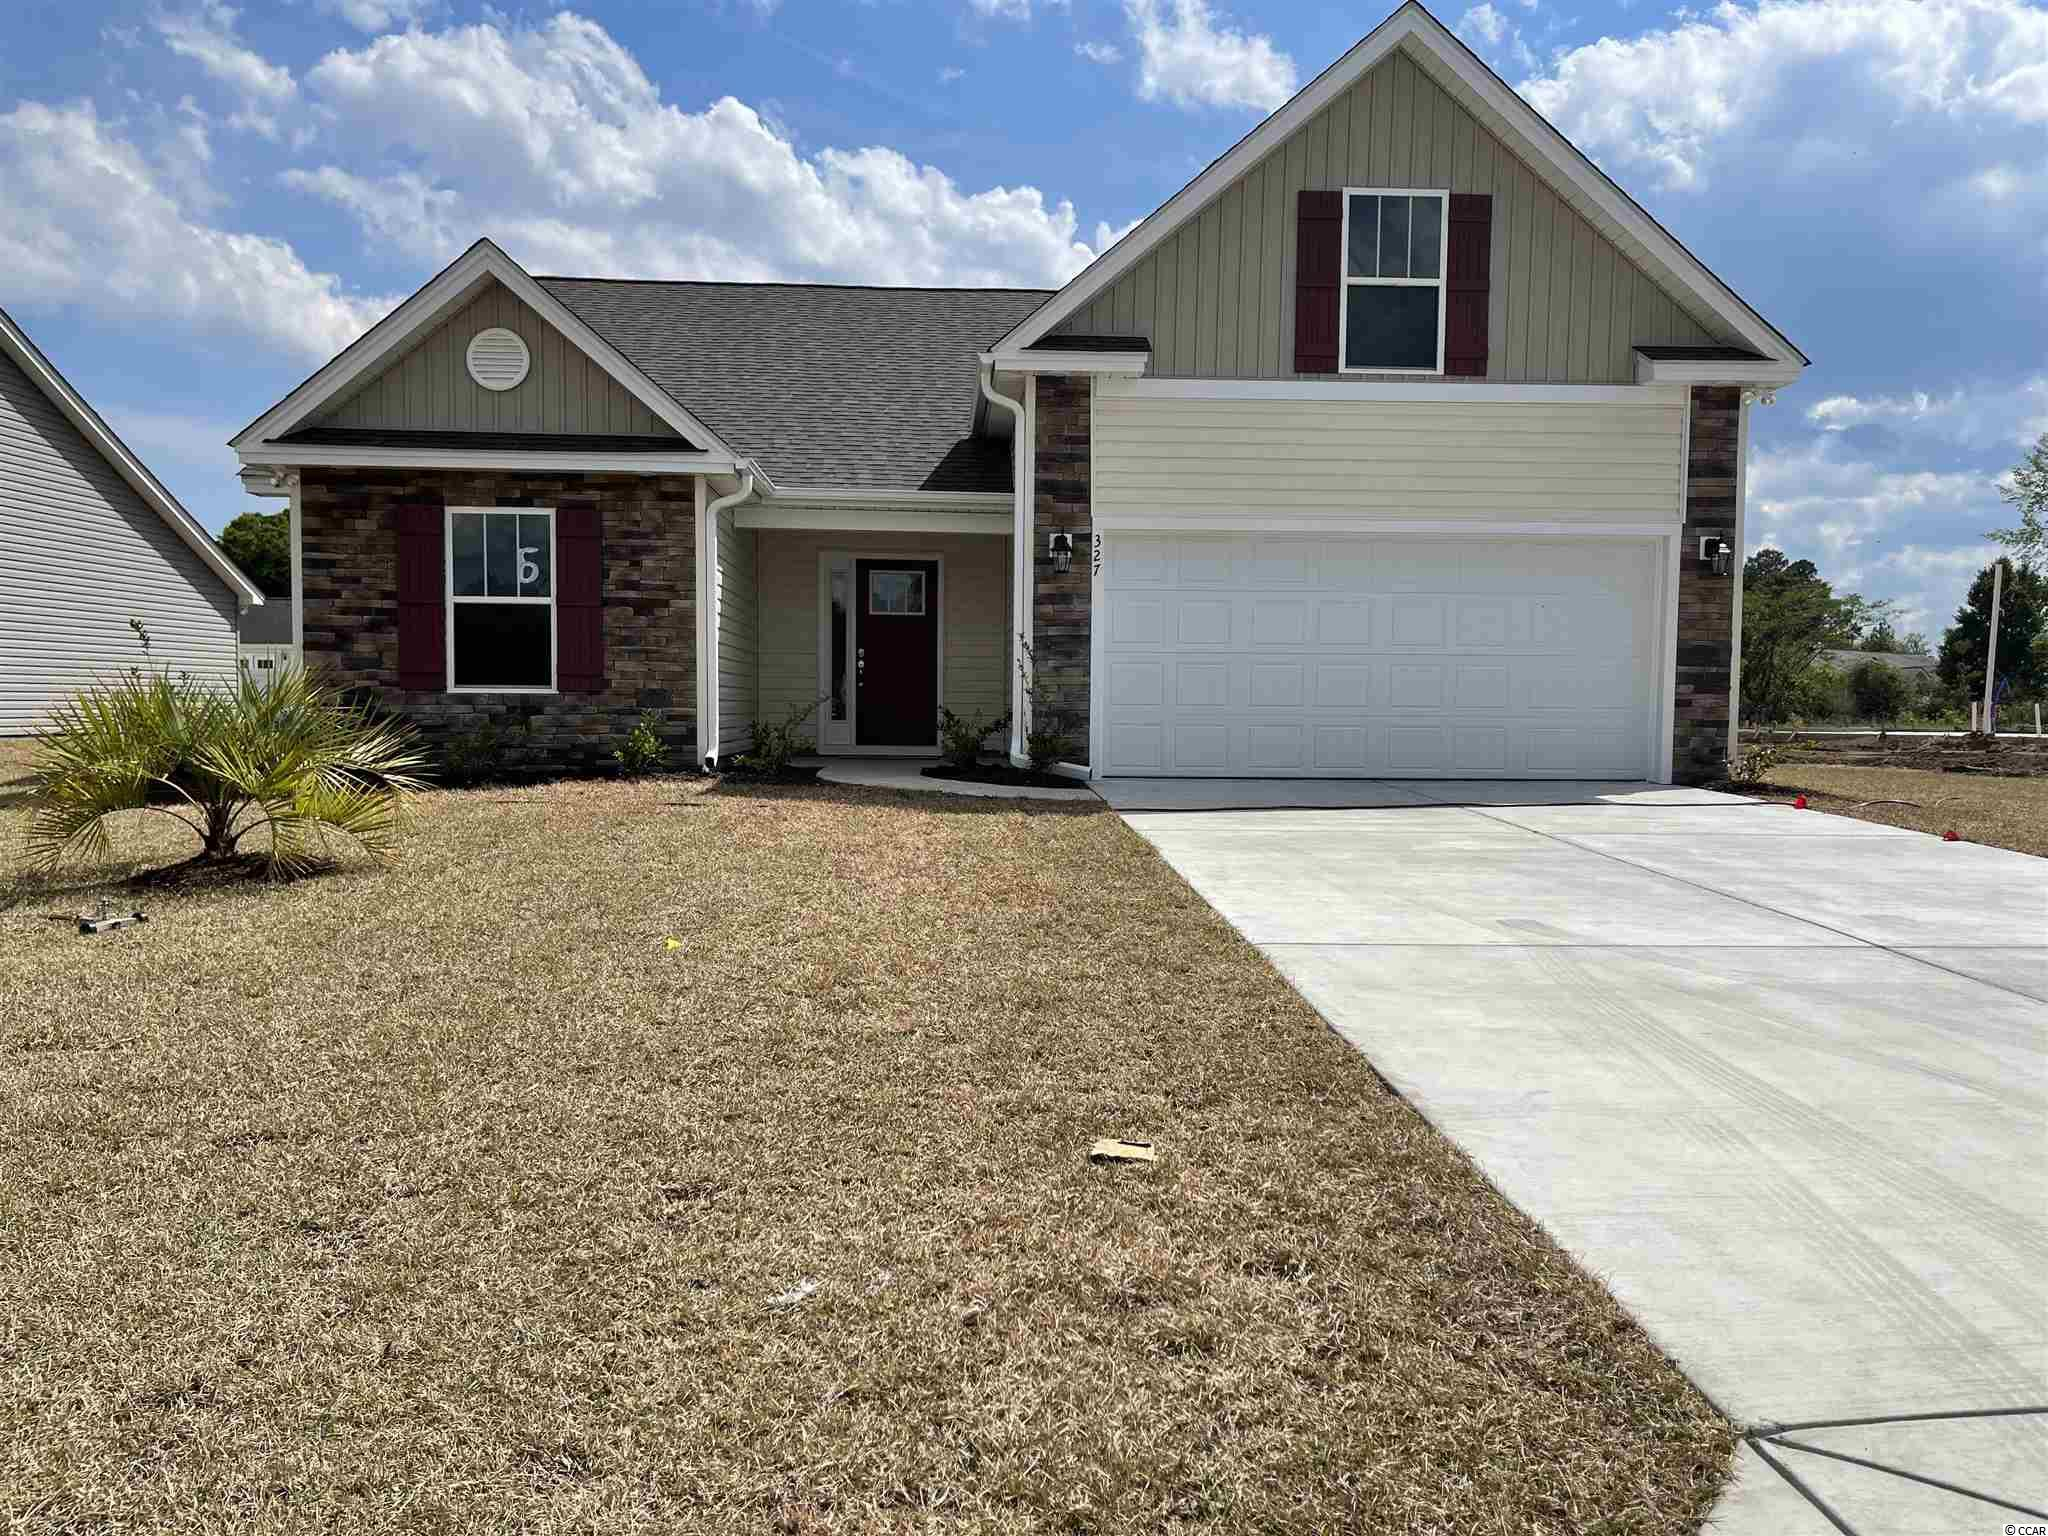 Red Hill commons is a new community located in Conway area only a few miles from the Beach and major shopping! This is the Emerald floor plan with added expansion through center and Bonus room with bathroom above garage. Open floor plan on a 0.21 ac home site featuring 4 bedrooms, 3 baths. This home includes a finished 2 car garage with garage openers. Ceramic tile in all bathrooms and Laundry room, Granite Kitchen Countertops, crown molding on kitchen cabinets with hardware included. Vaulted ceiling in Family room, every bedroom. Home also includes TAEXX pest control tubing!! Stone accents on the exterior as well. All measurements are approximate *Anticipating completion time April2021*